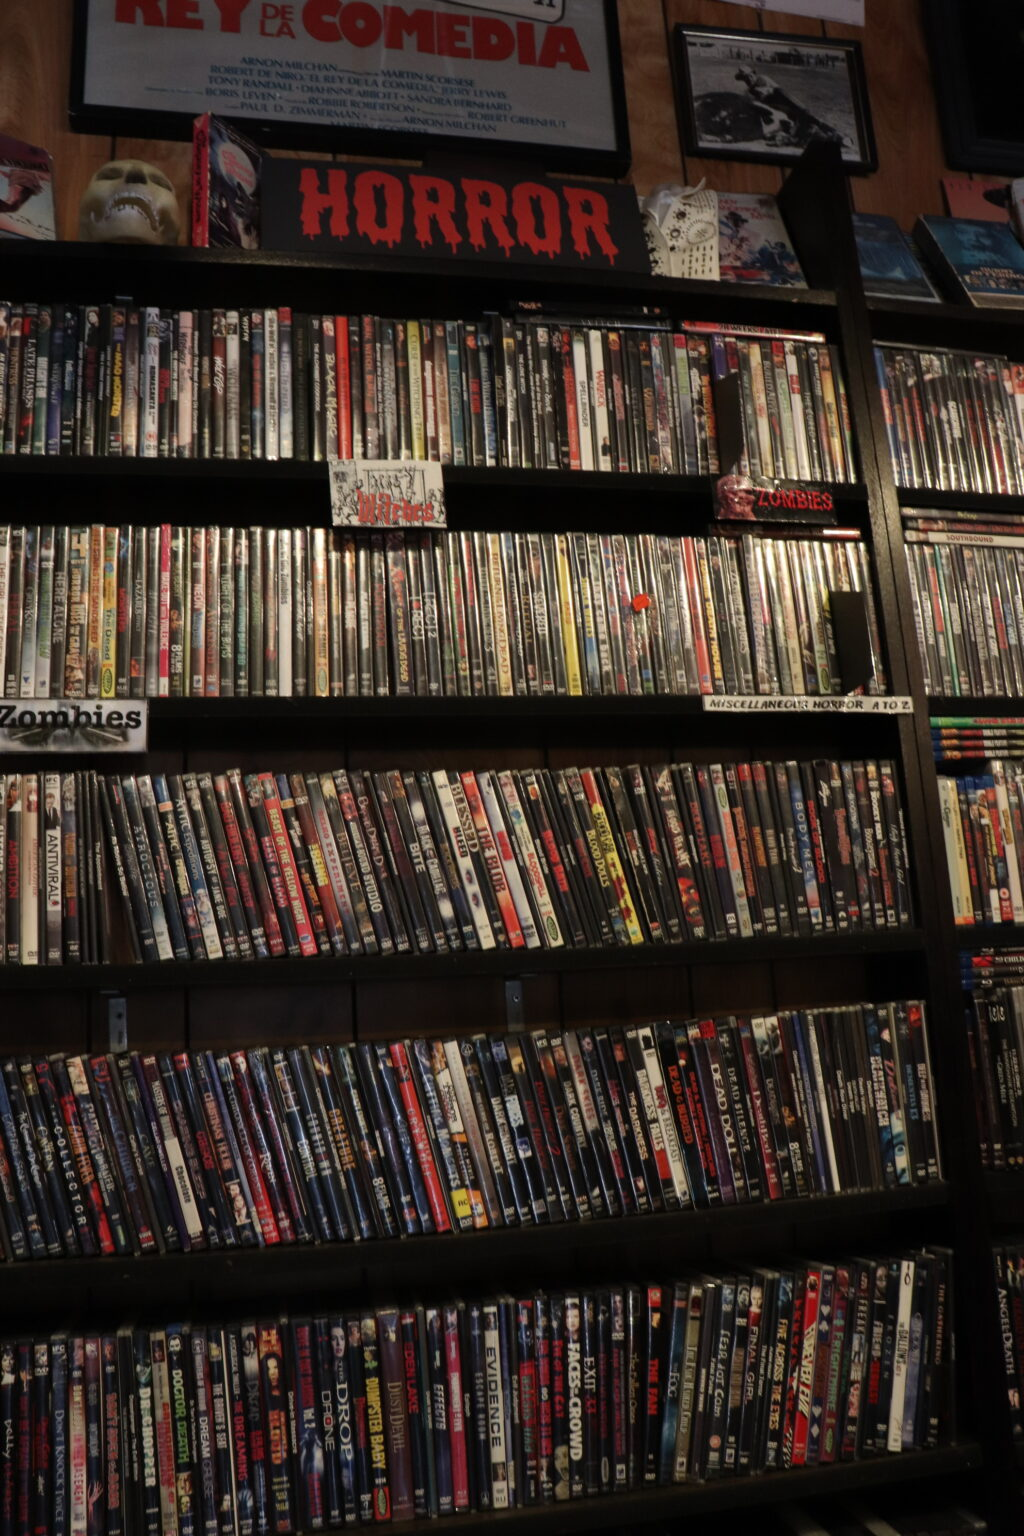 Cinefile part of horror section 1024x1536 - The 5 Best Mom-and-Pop Video Stores in Los Angeles